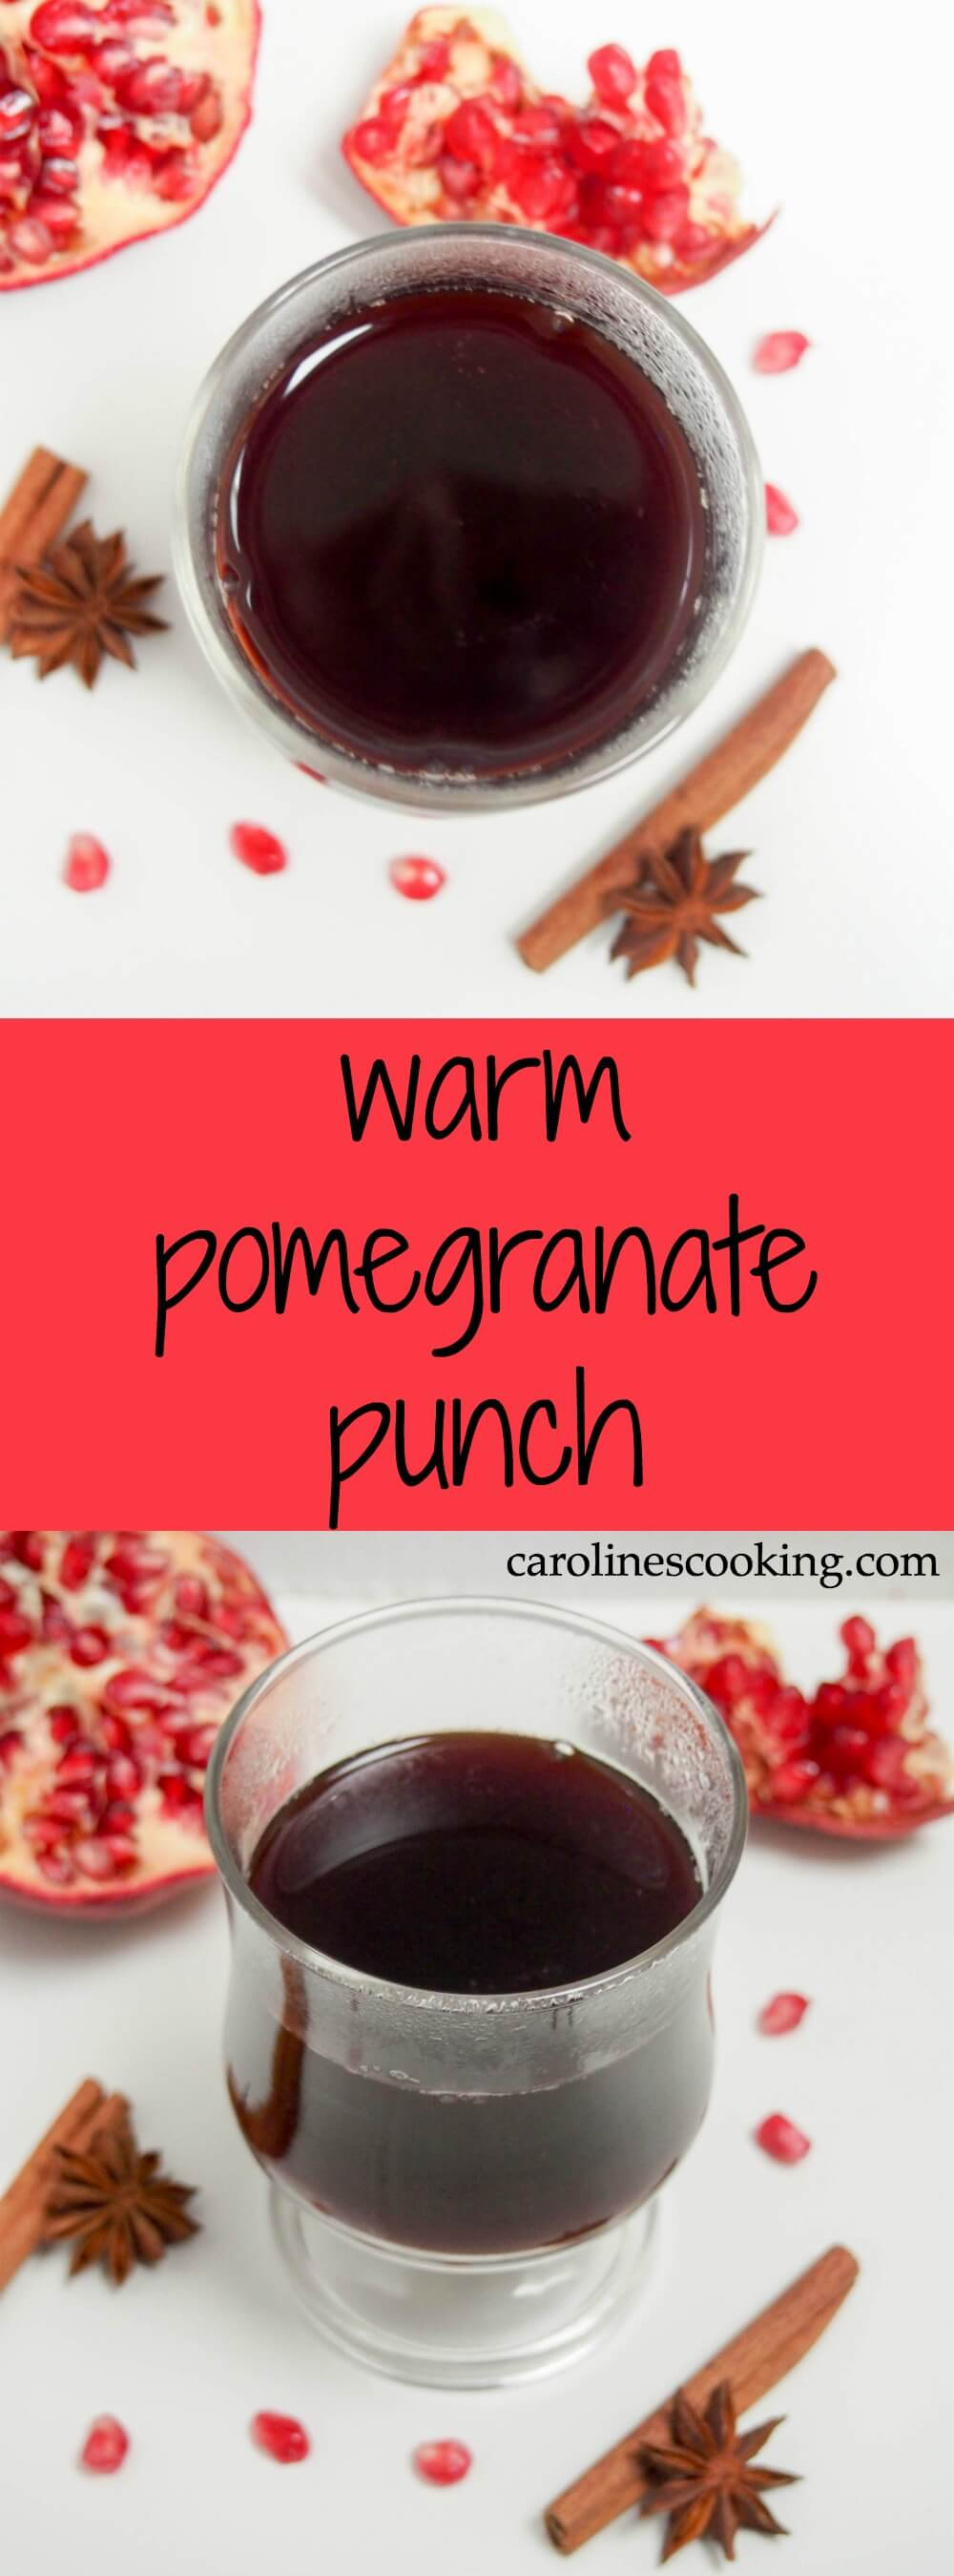 warm pomegranate punch